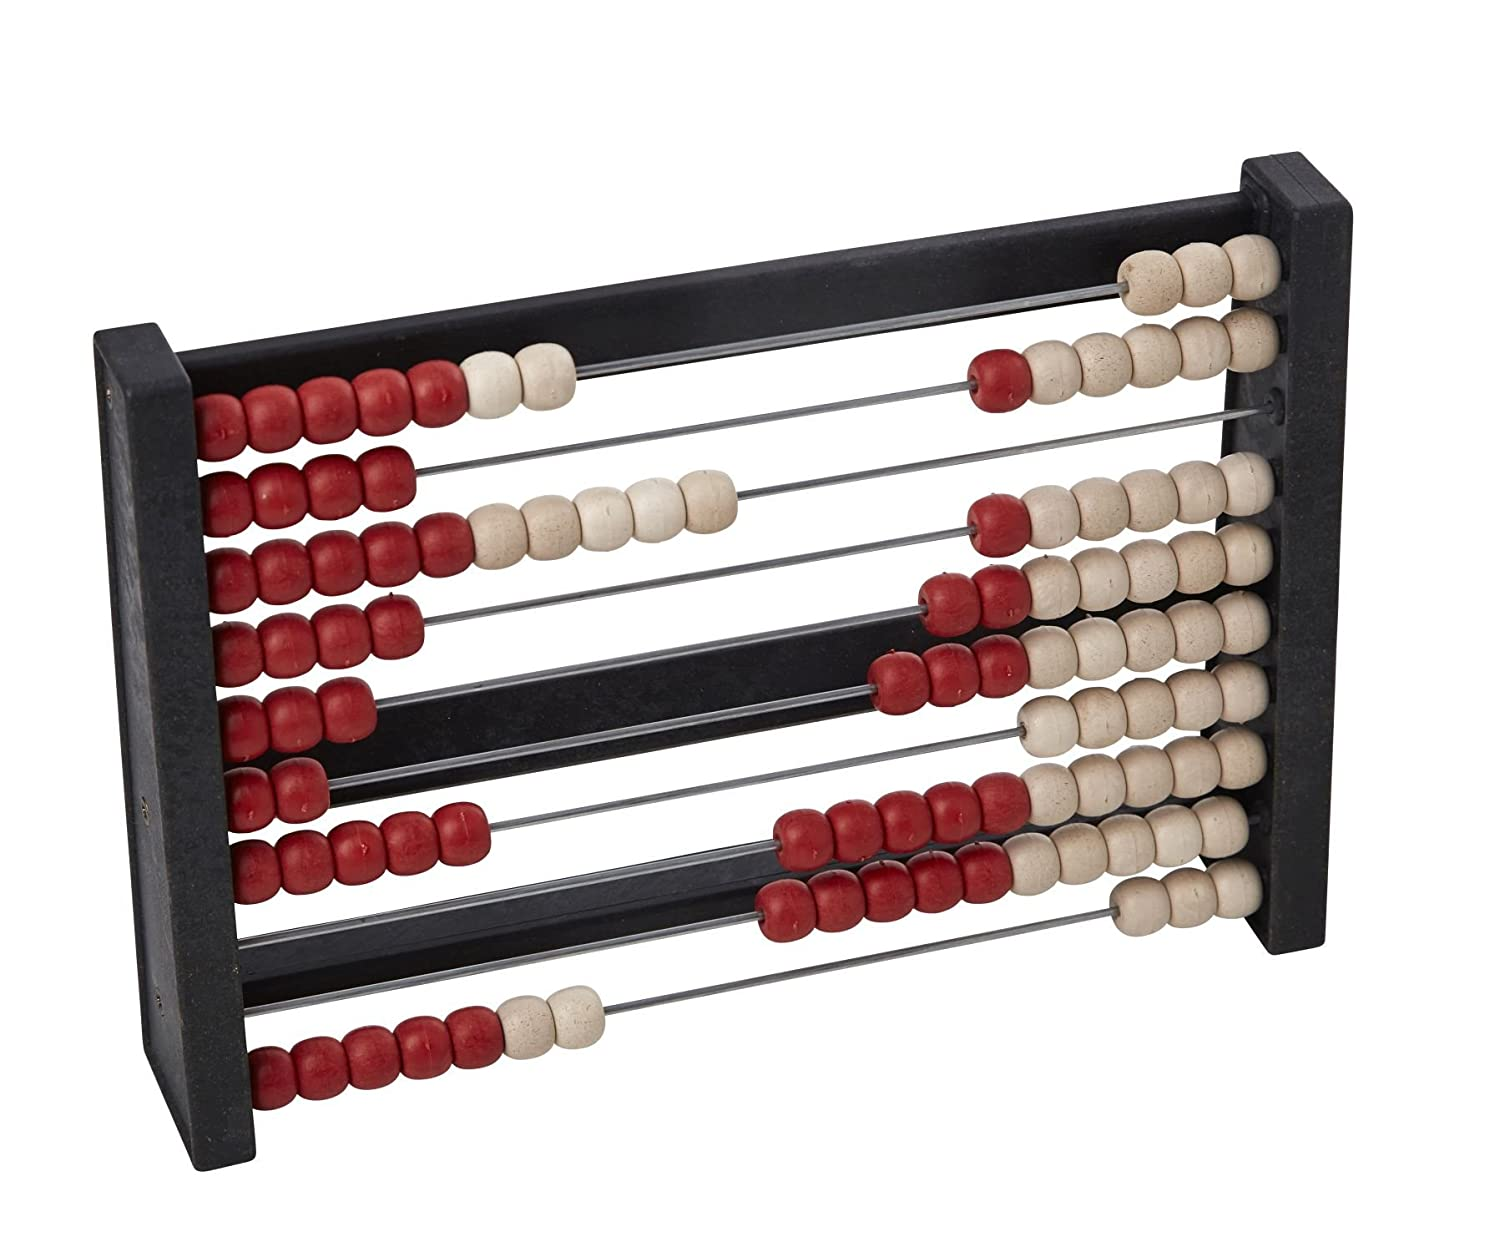 Linex Abacus with 100 Beads 080203-300